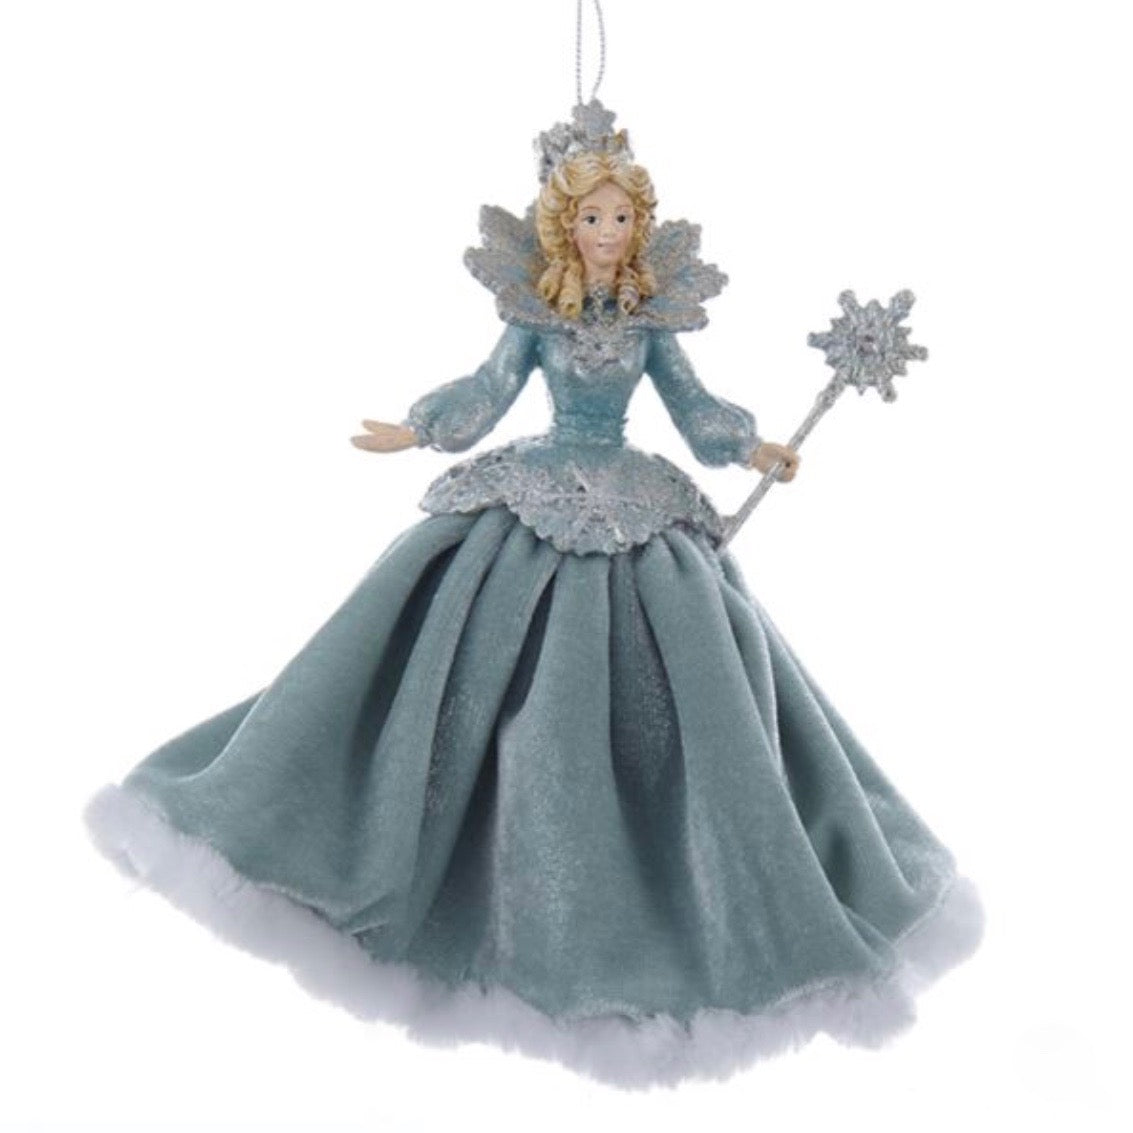 Kurt Adler Platinum and Teal Snow Queen with Fabric Dress Ornament